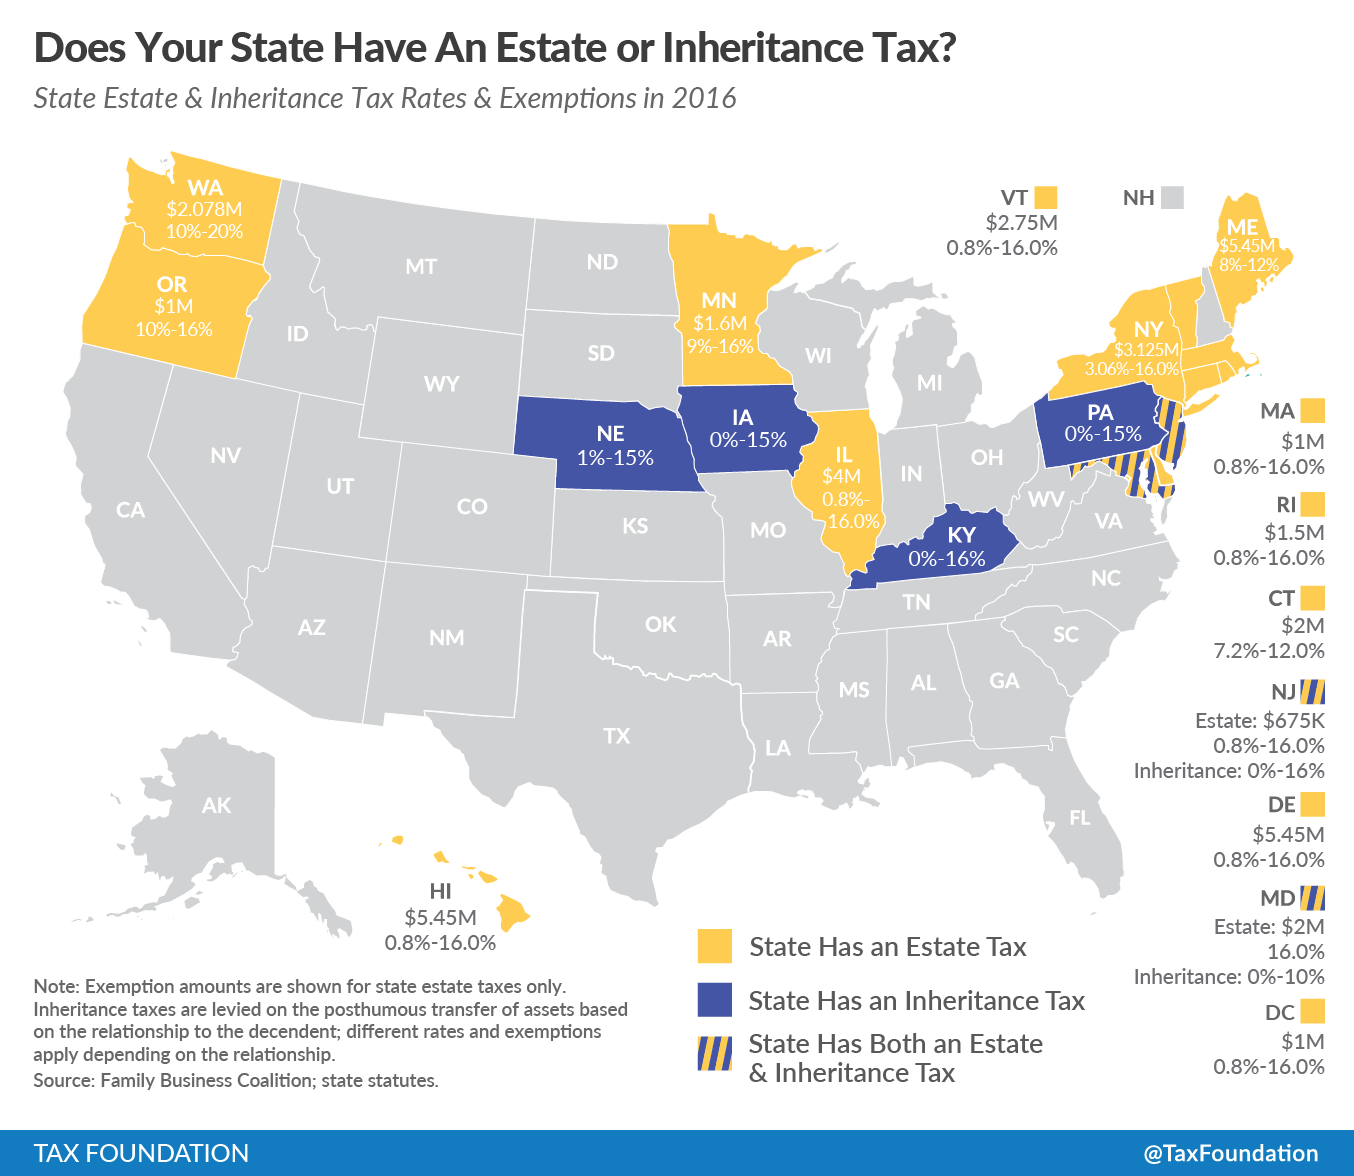 Maine Governor LePage Proposes Good Tax Policy In New Budget Tax - Property tax map us 2016